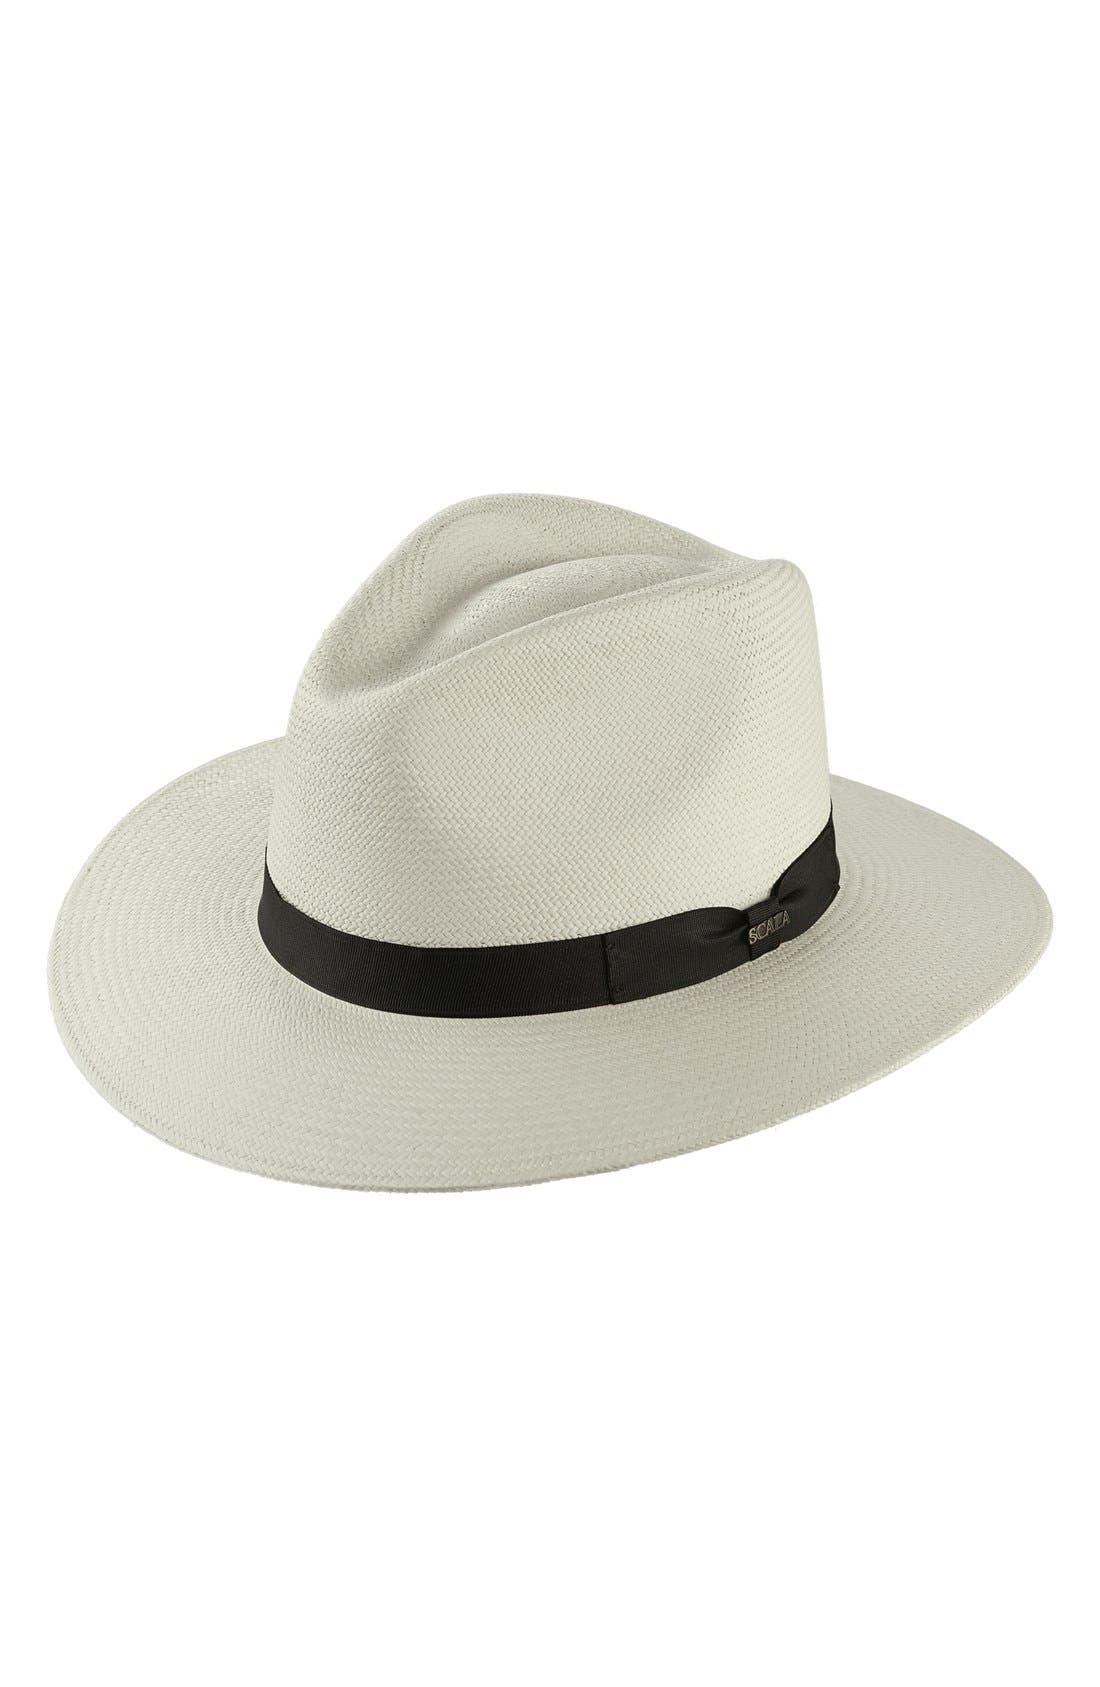 Straw Safari Hat,                             Main thumbnail 1, color,                             116